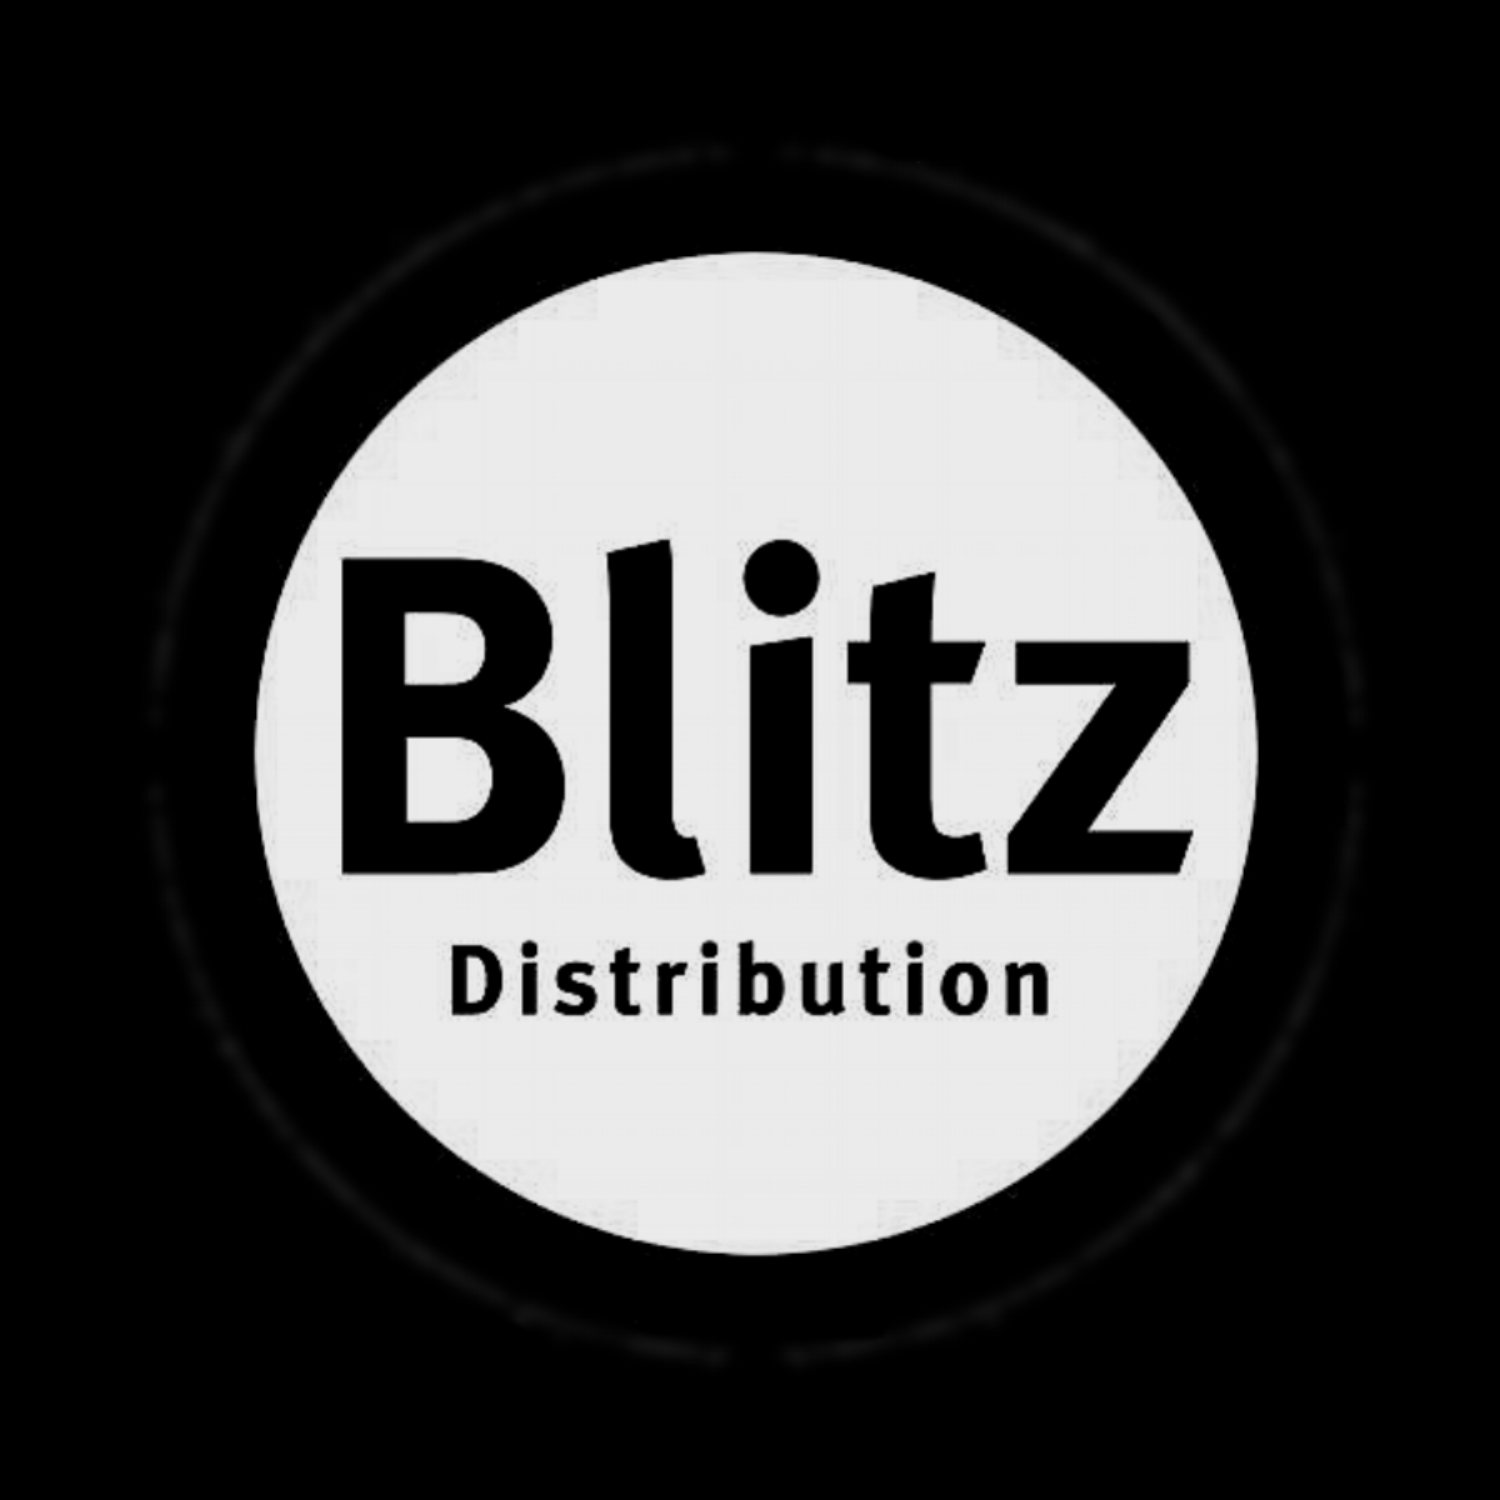 BLITZ DISTRIBUTION